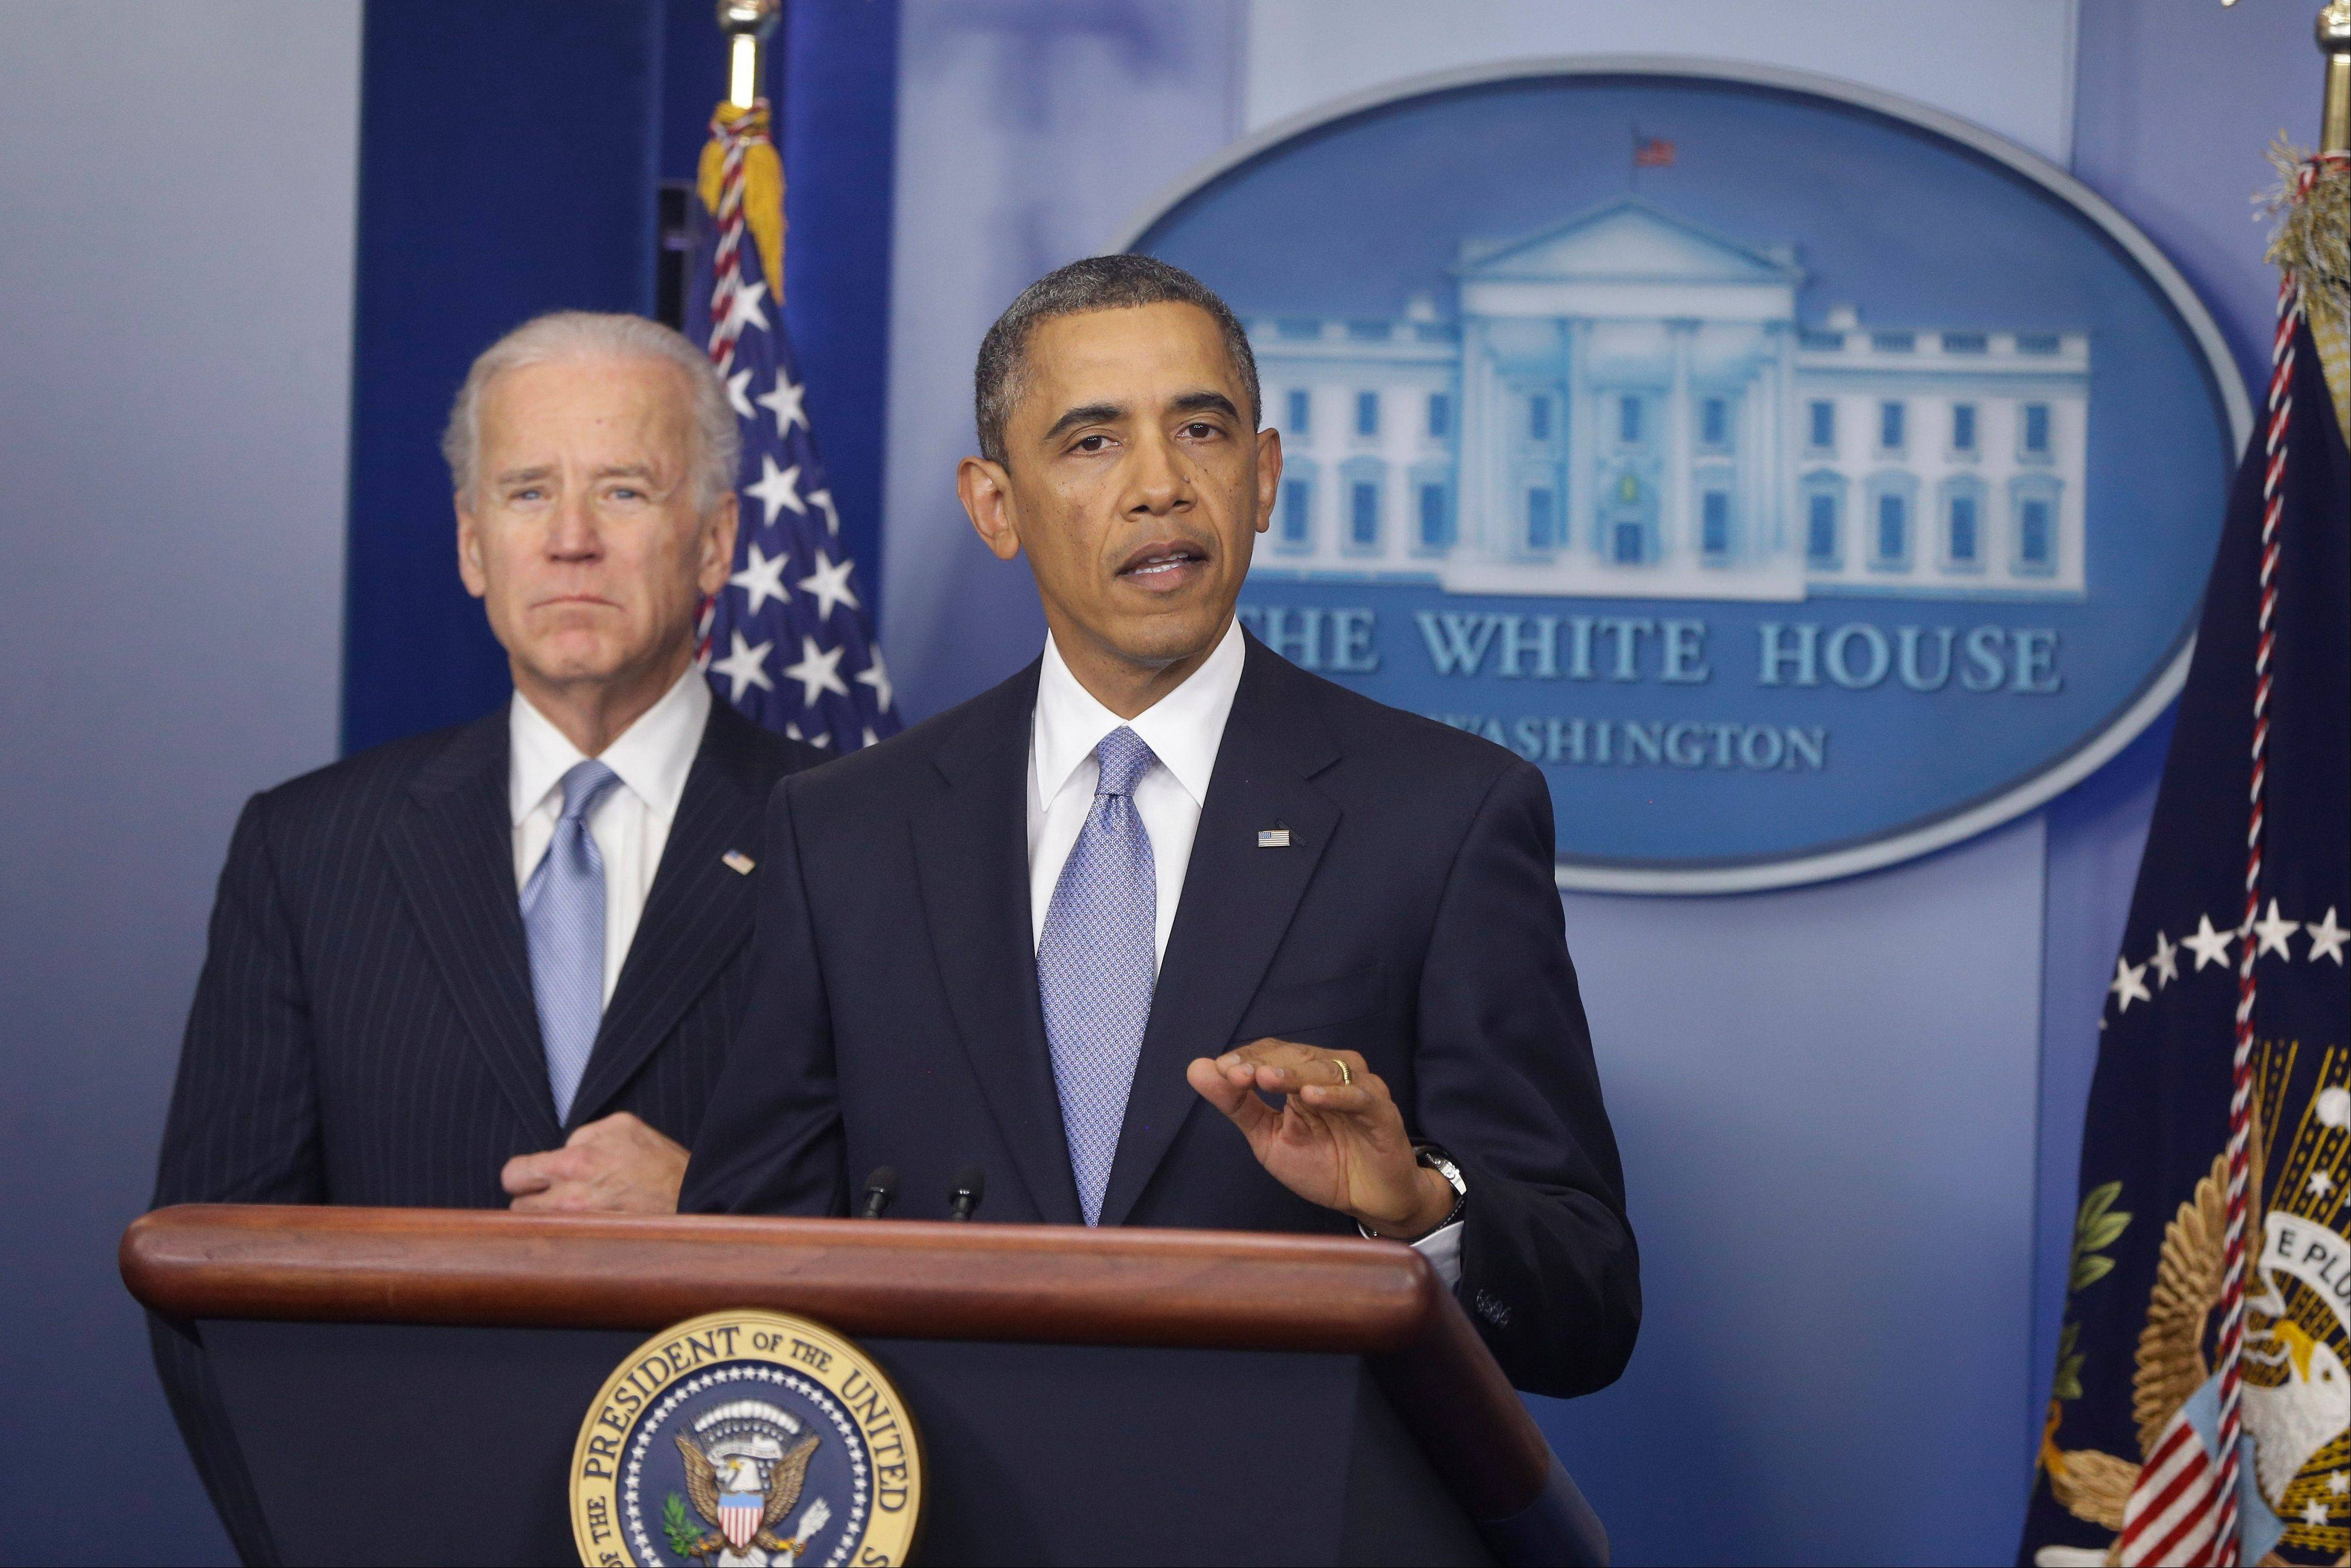 President Barack Obama, with Vice President Joe Biden looking on, makes a statement regarding passage of the fiscal cliff bill at the White House Tuesday evening.